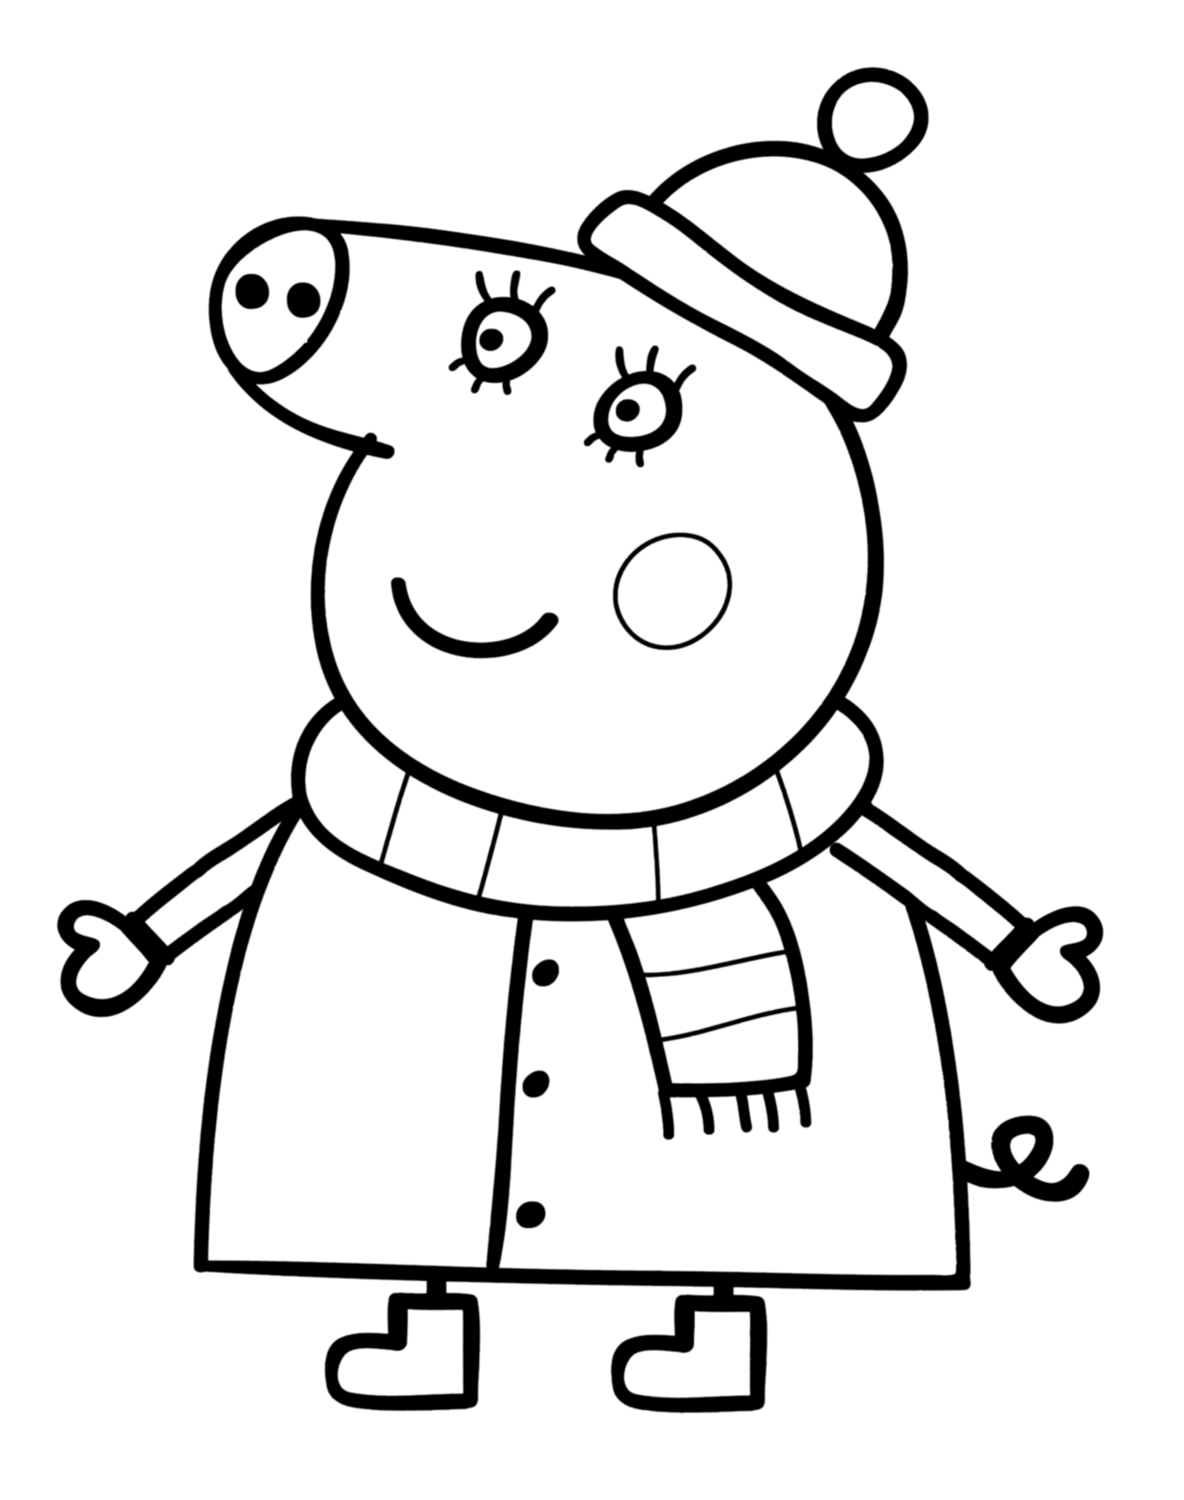 peppa pig coloring book peppa pig colouring book to print through the thousand coloring book pig peppa